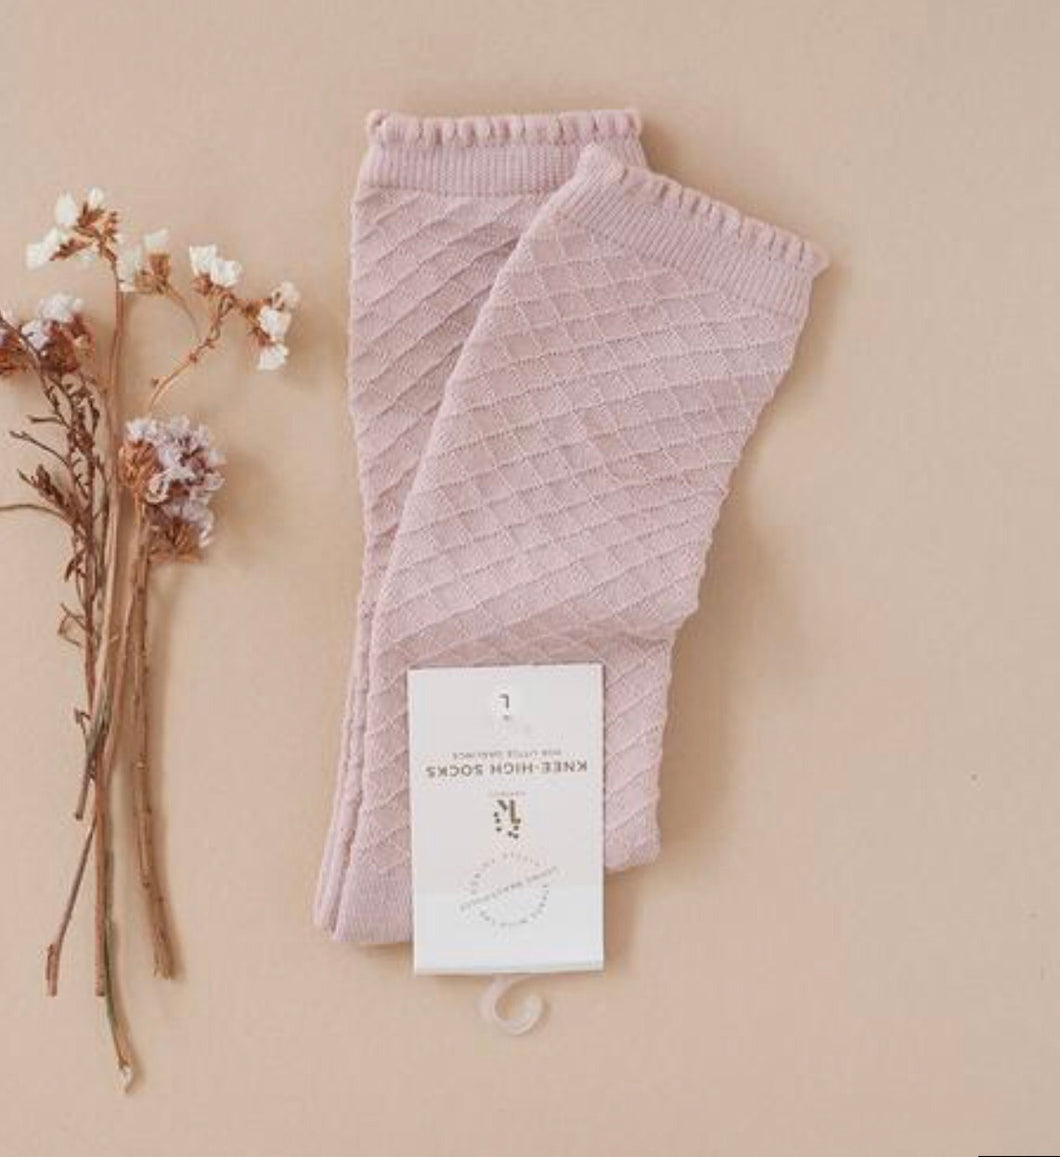 Karibou Picnic Knee-High Sock - Rose Blush